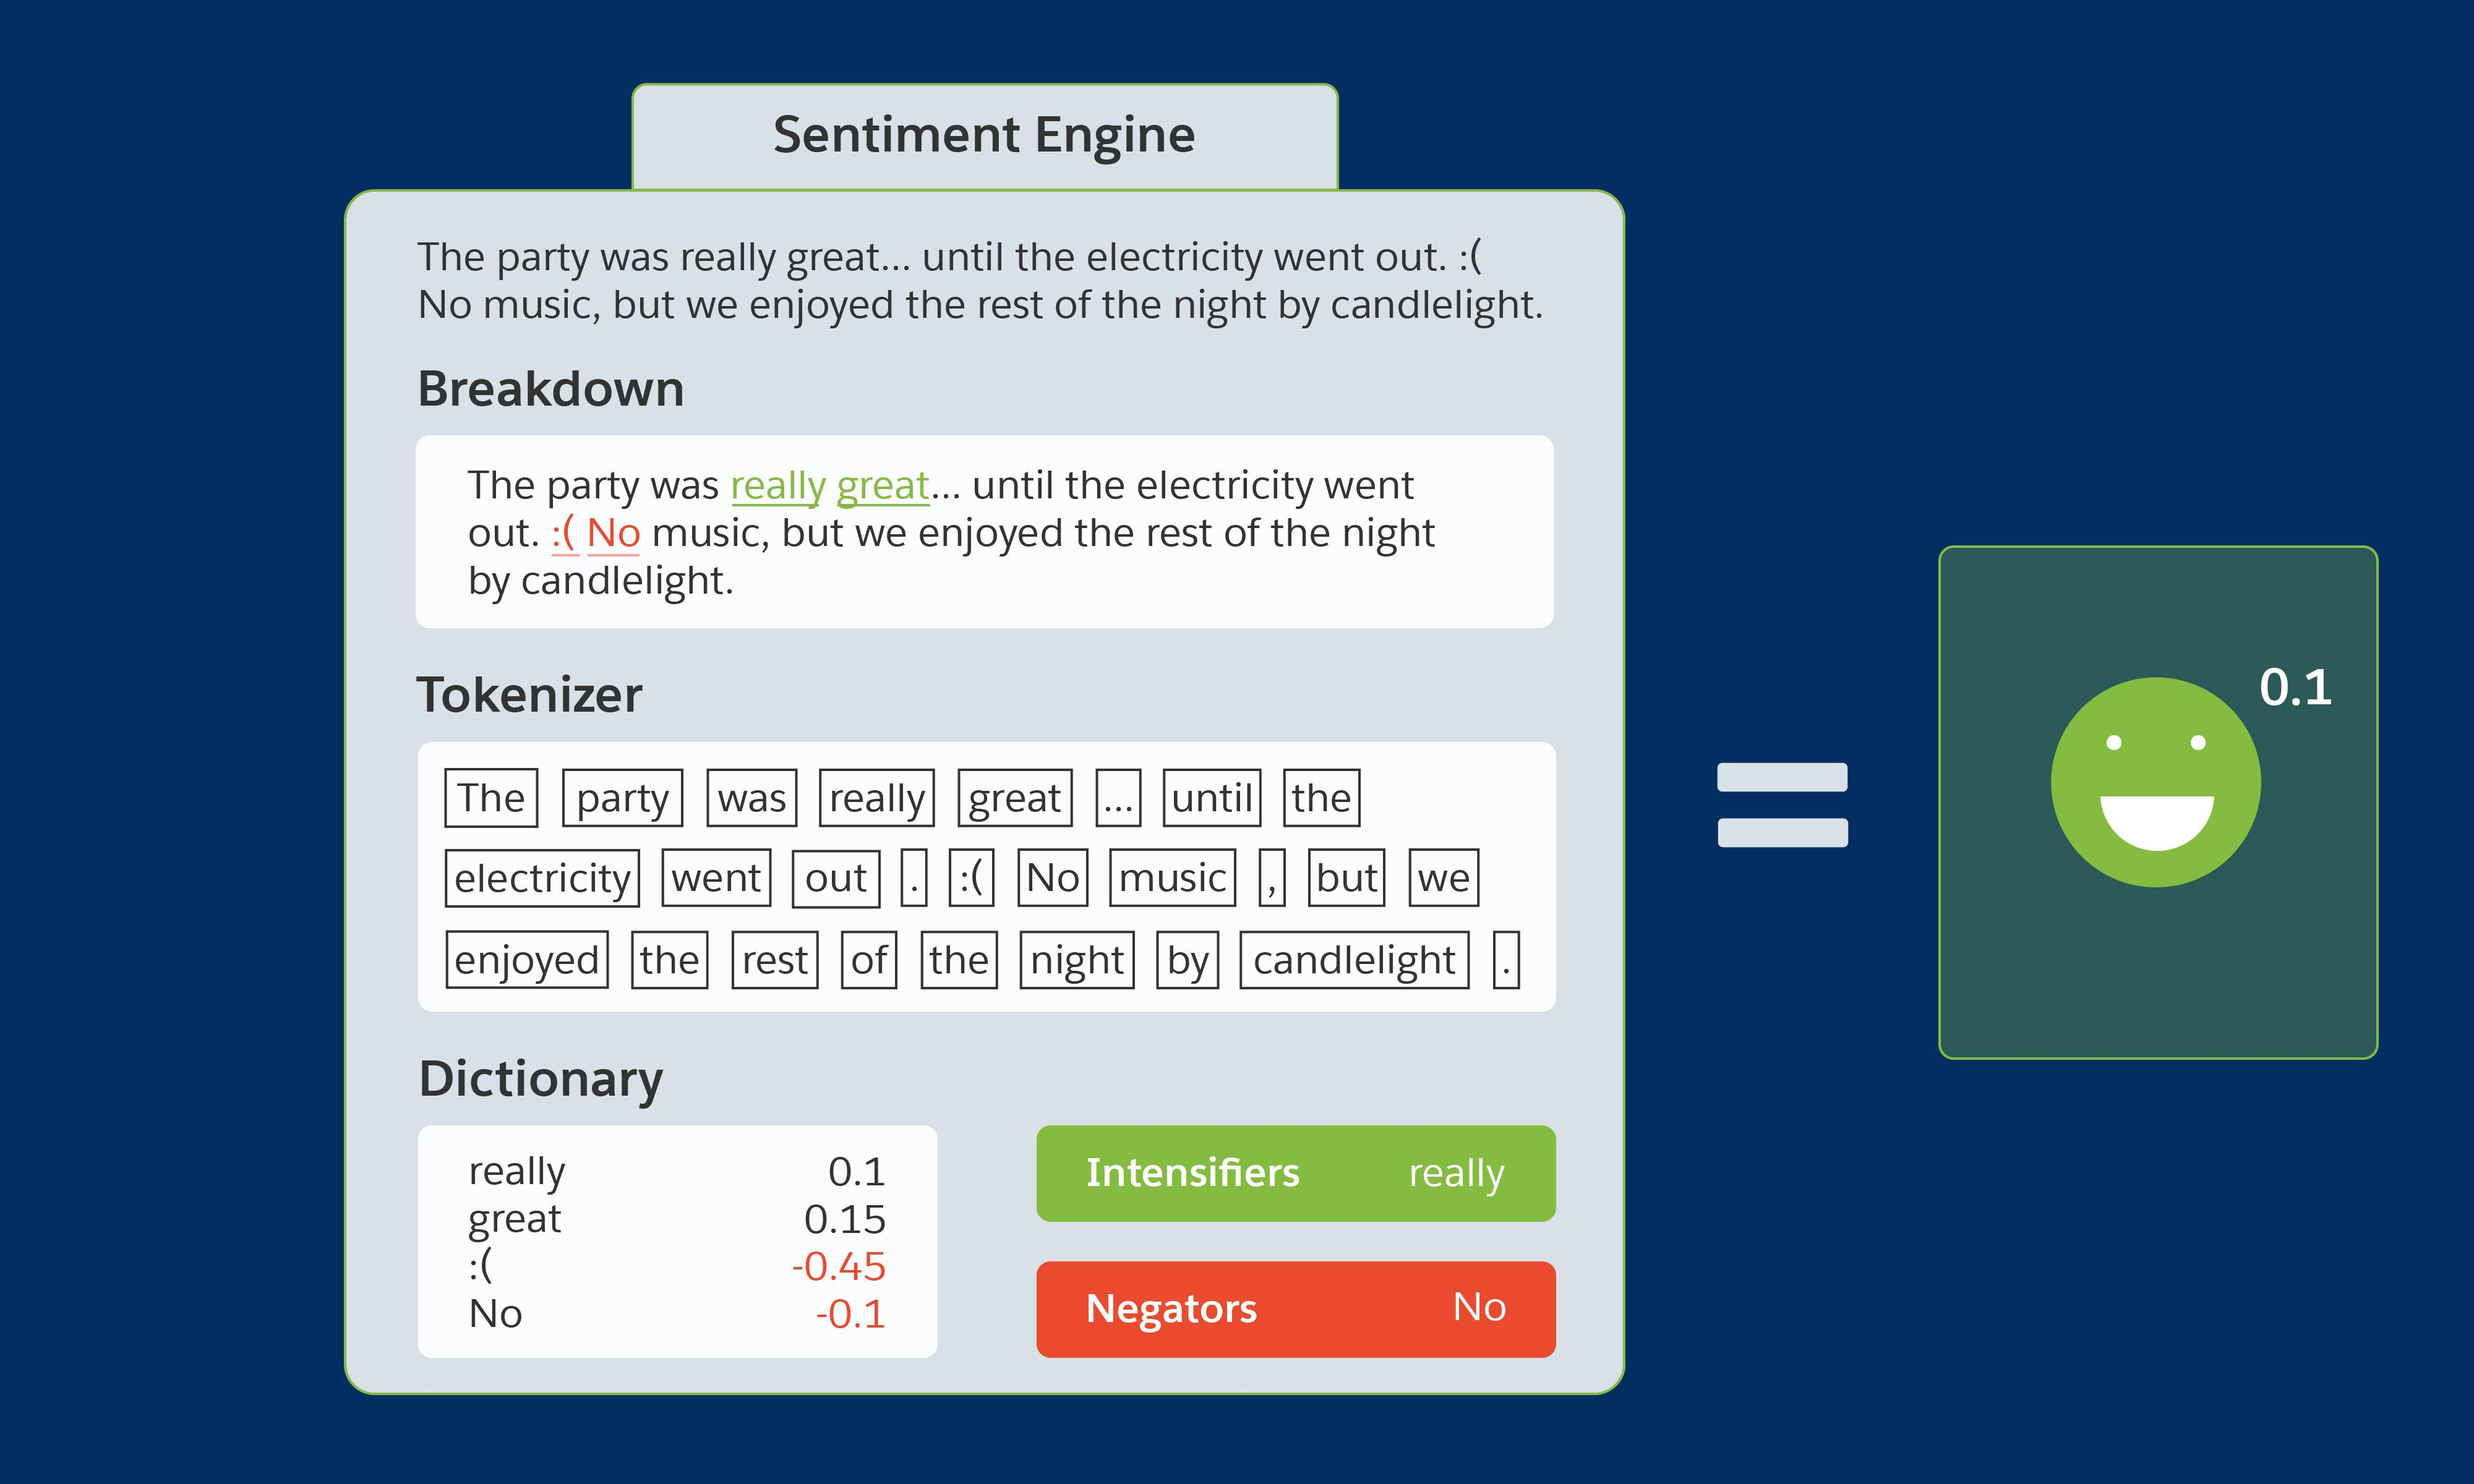 "An example post ""The party was really great... until the electricity went out. :( No music, but we enjoyed the rest of the night by candlelight"" is analyzed for breakdown, tokenizer, dictionary, intensifiers, and negators."